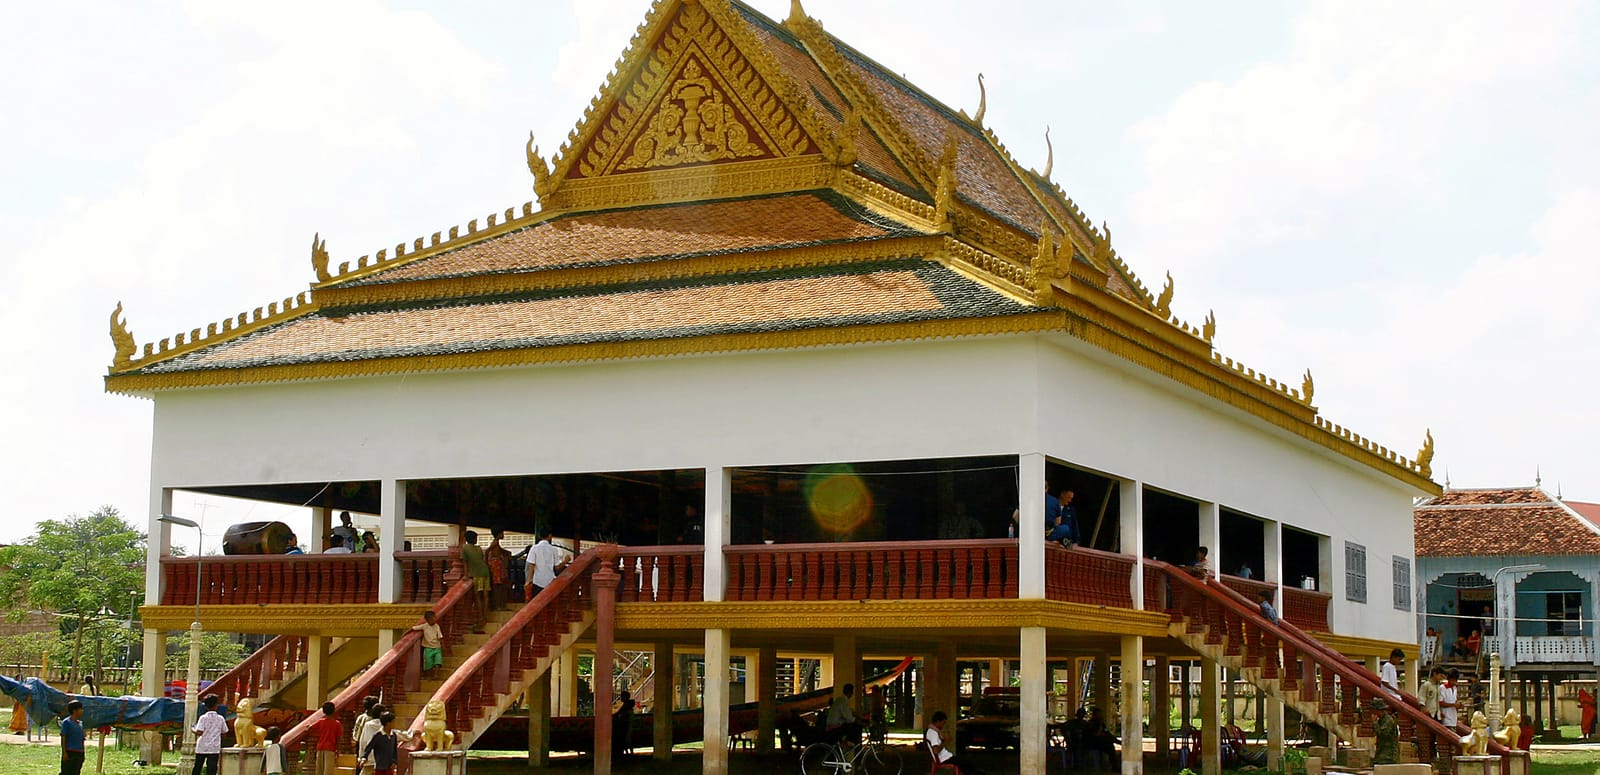 1492074606_buddhist_temple_in_the_village_of_stung_trung__cambodia.jpeg